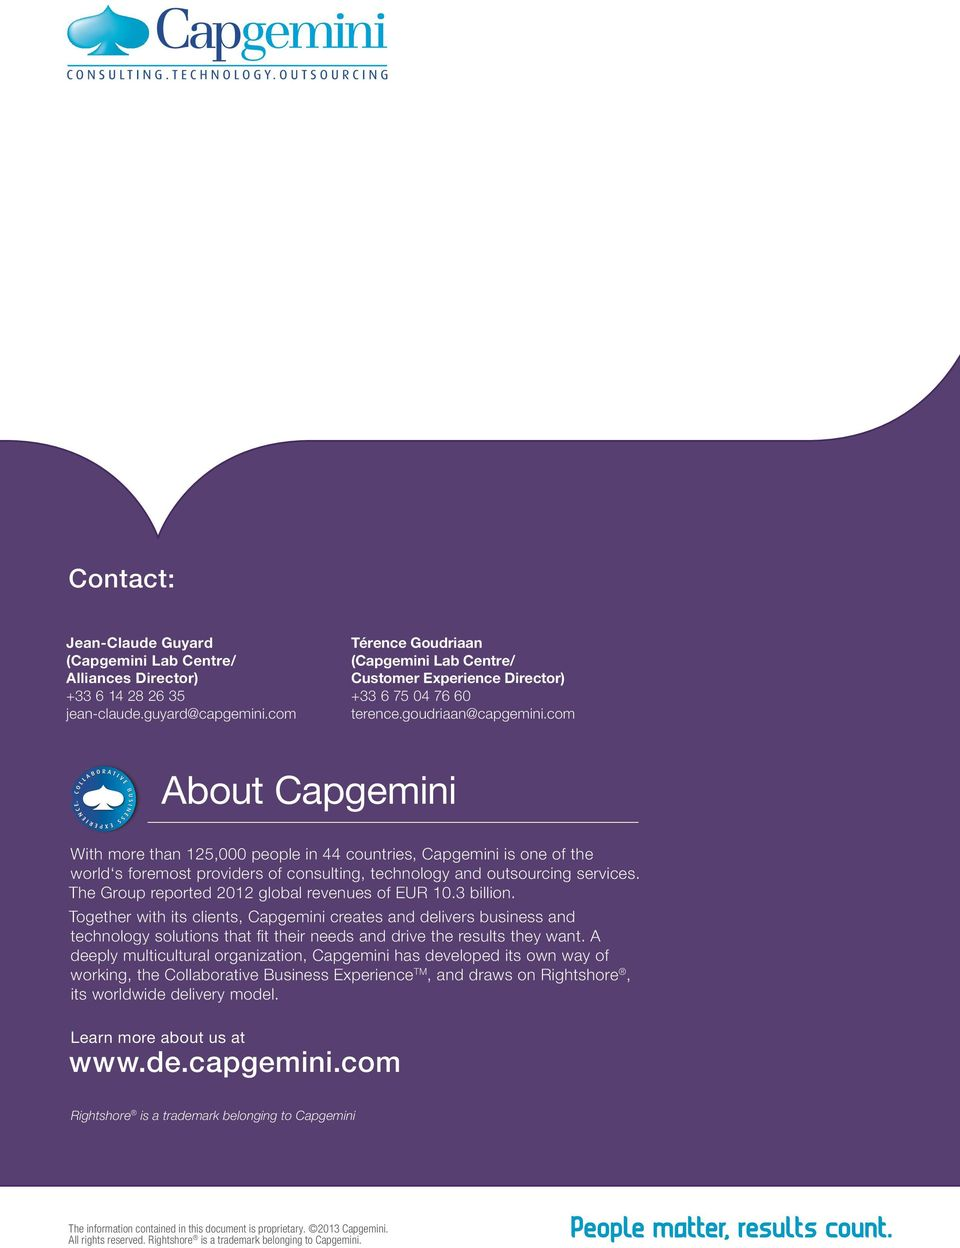 com About Capgemii With more tha 125,000 people i 44 coutries, Capgemii is oe of the world s foremost providers of cosultig, techology ad outsourcig services.